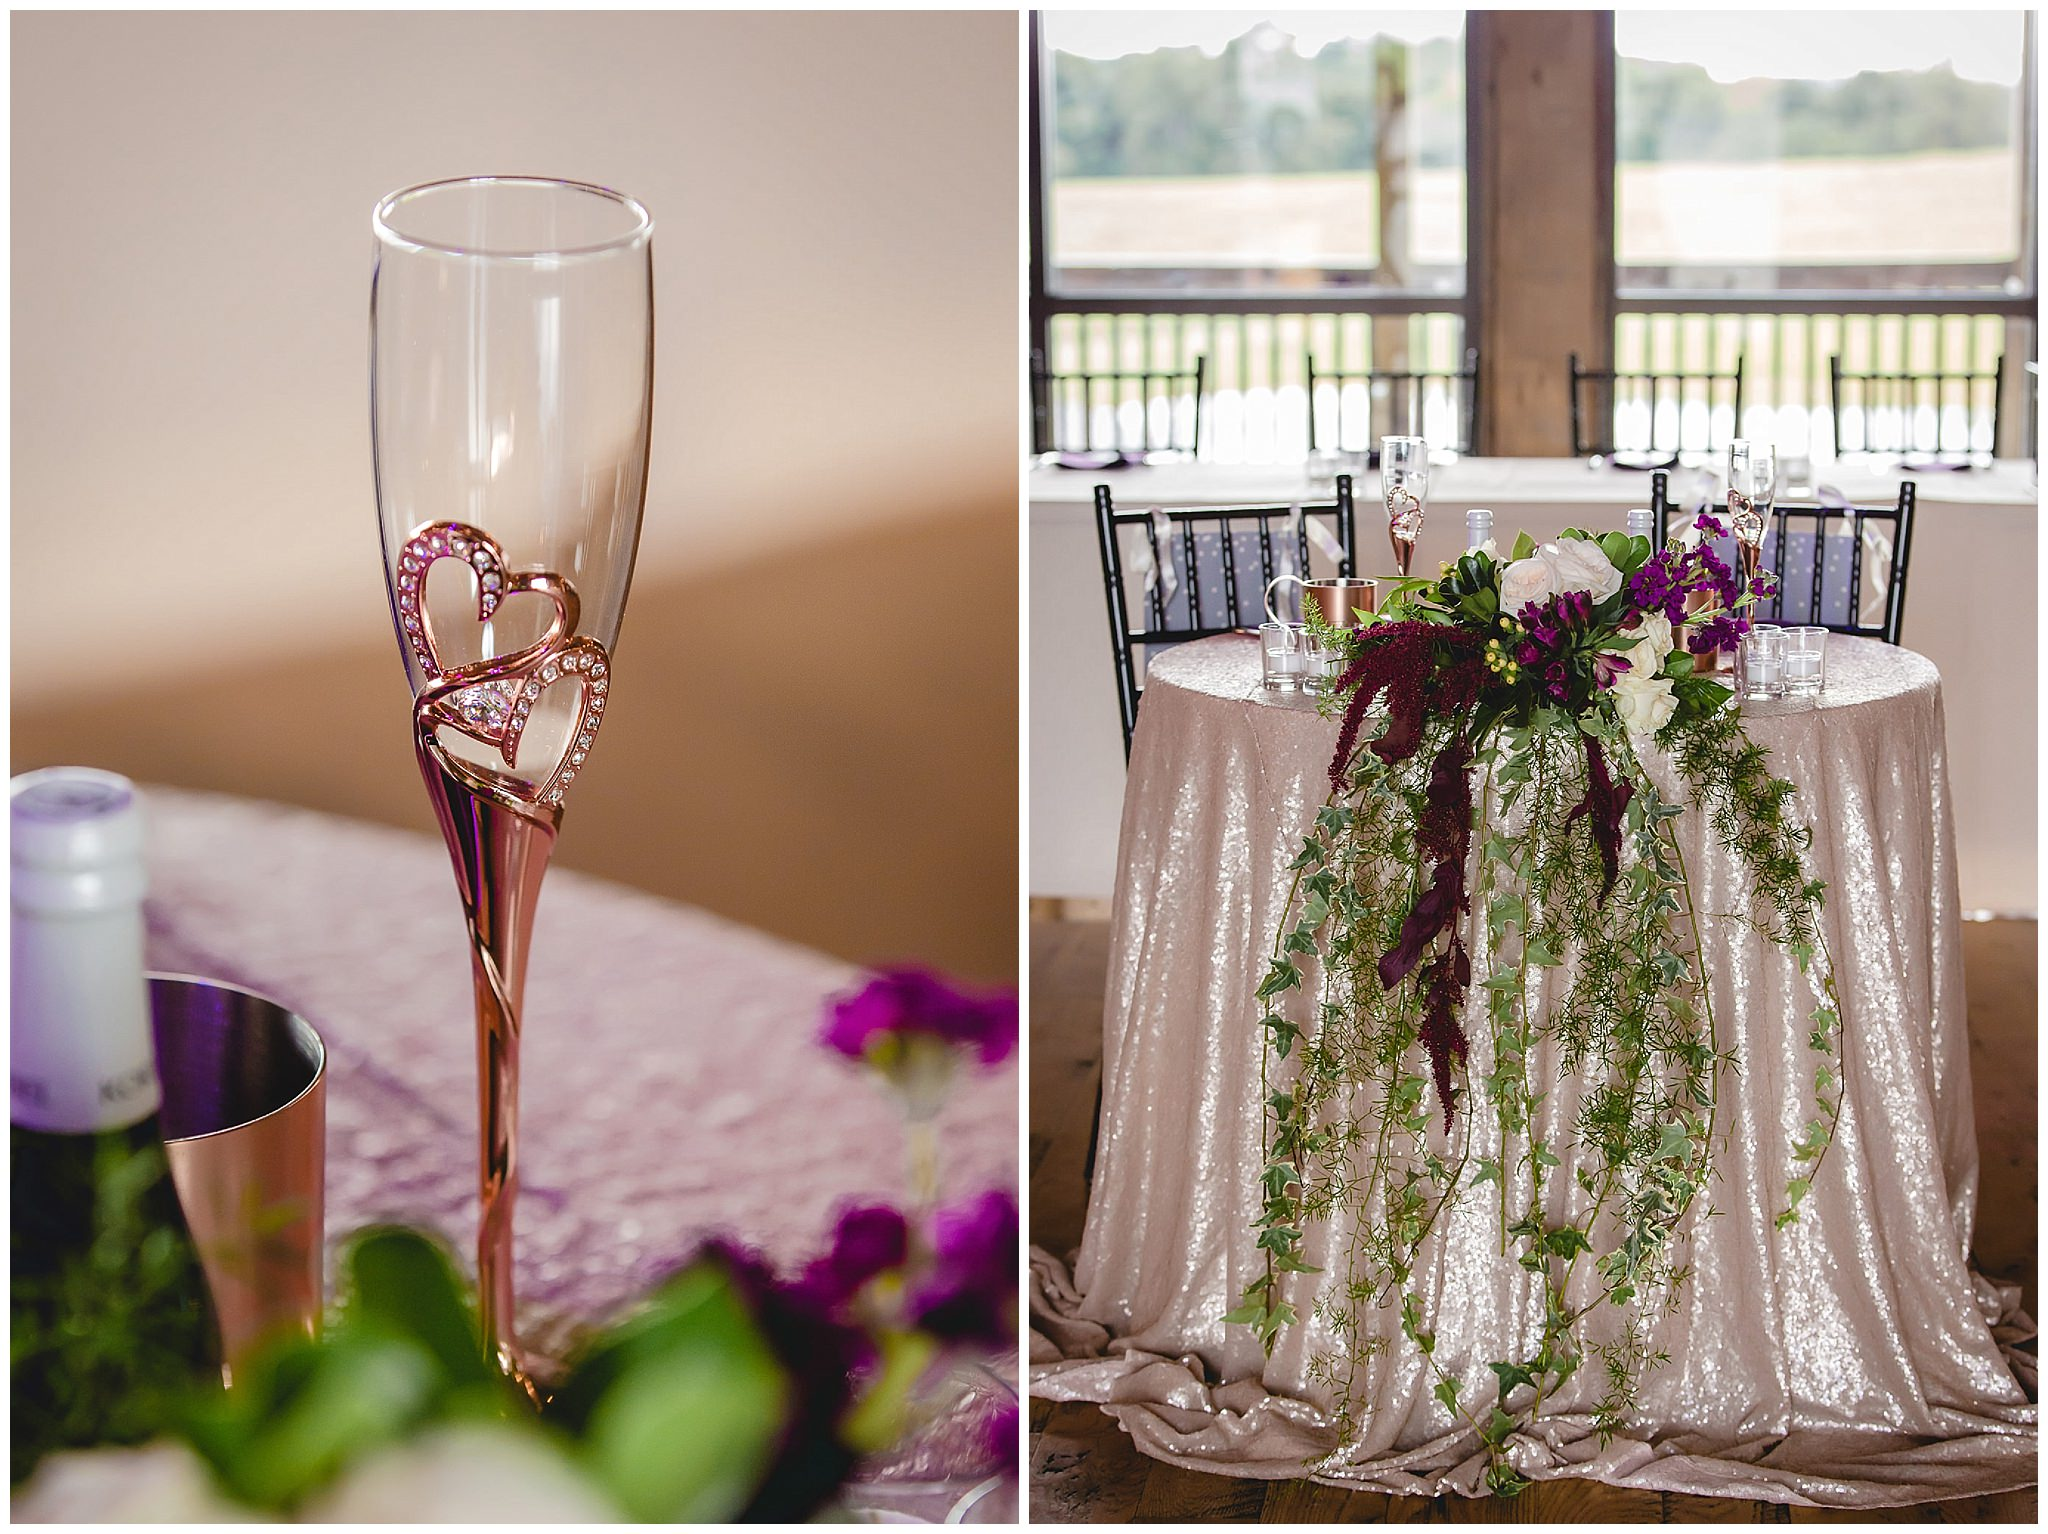 Rose gold champagne flutes and head table with floral details at White Barn